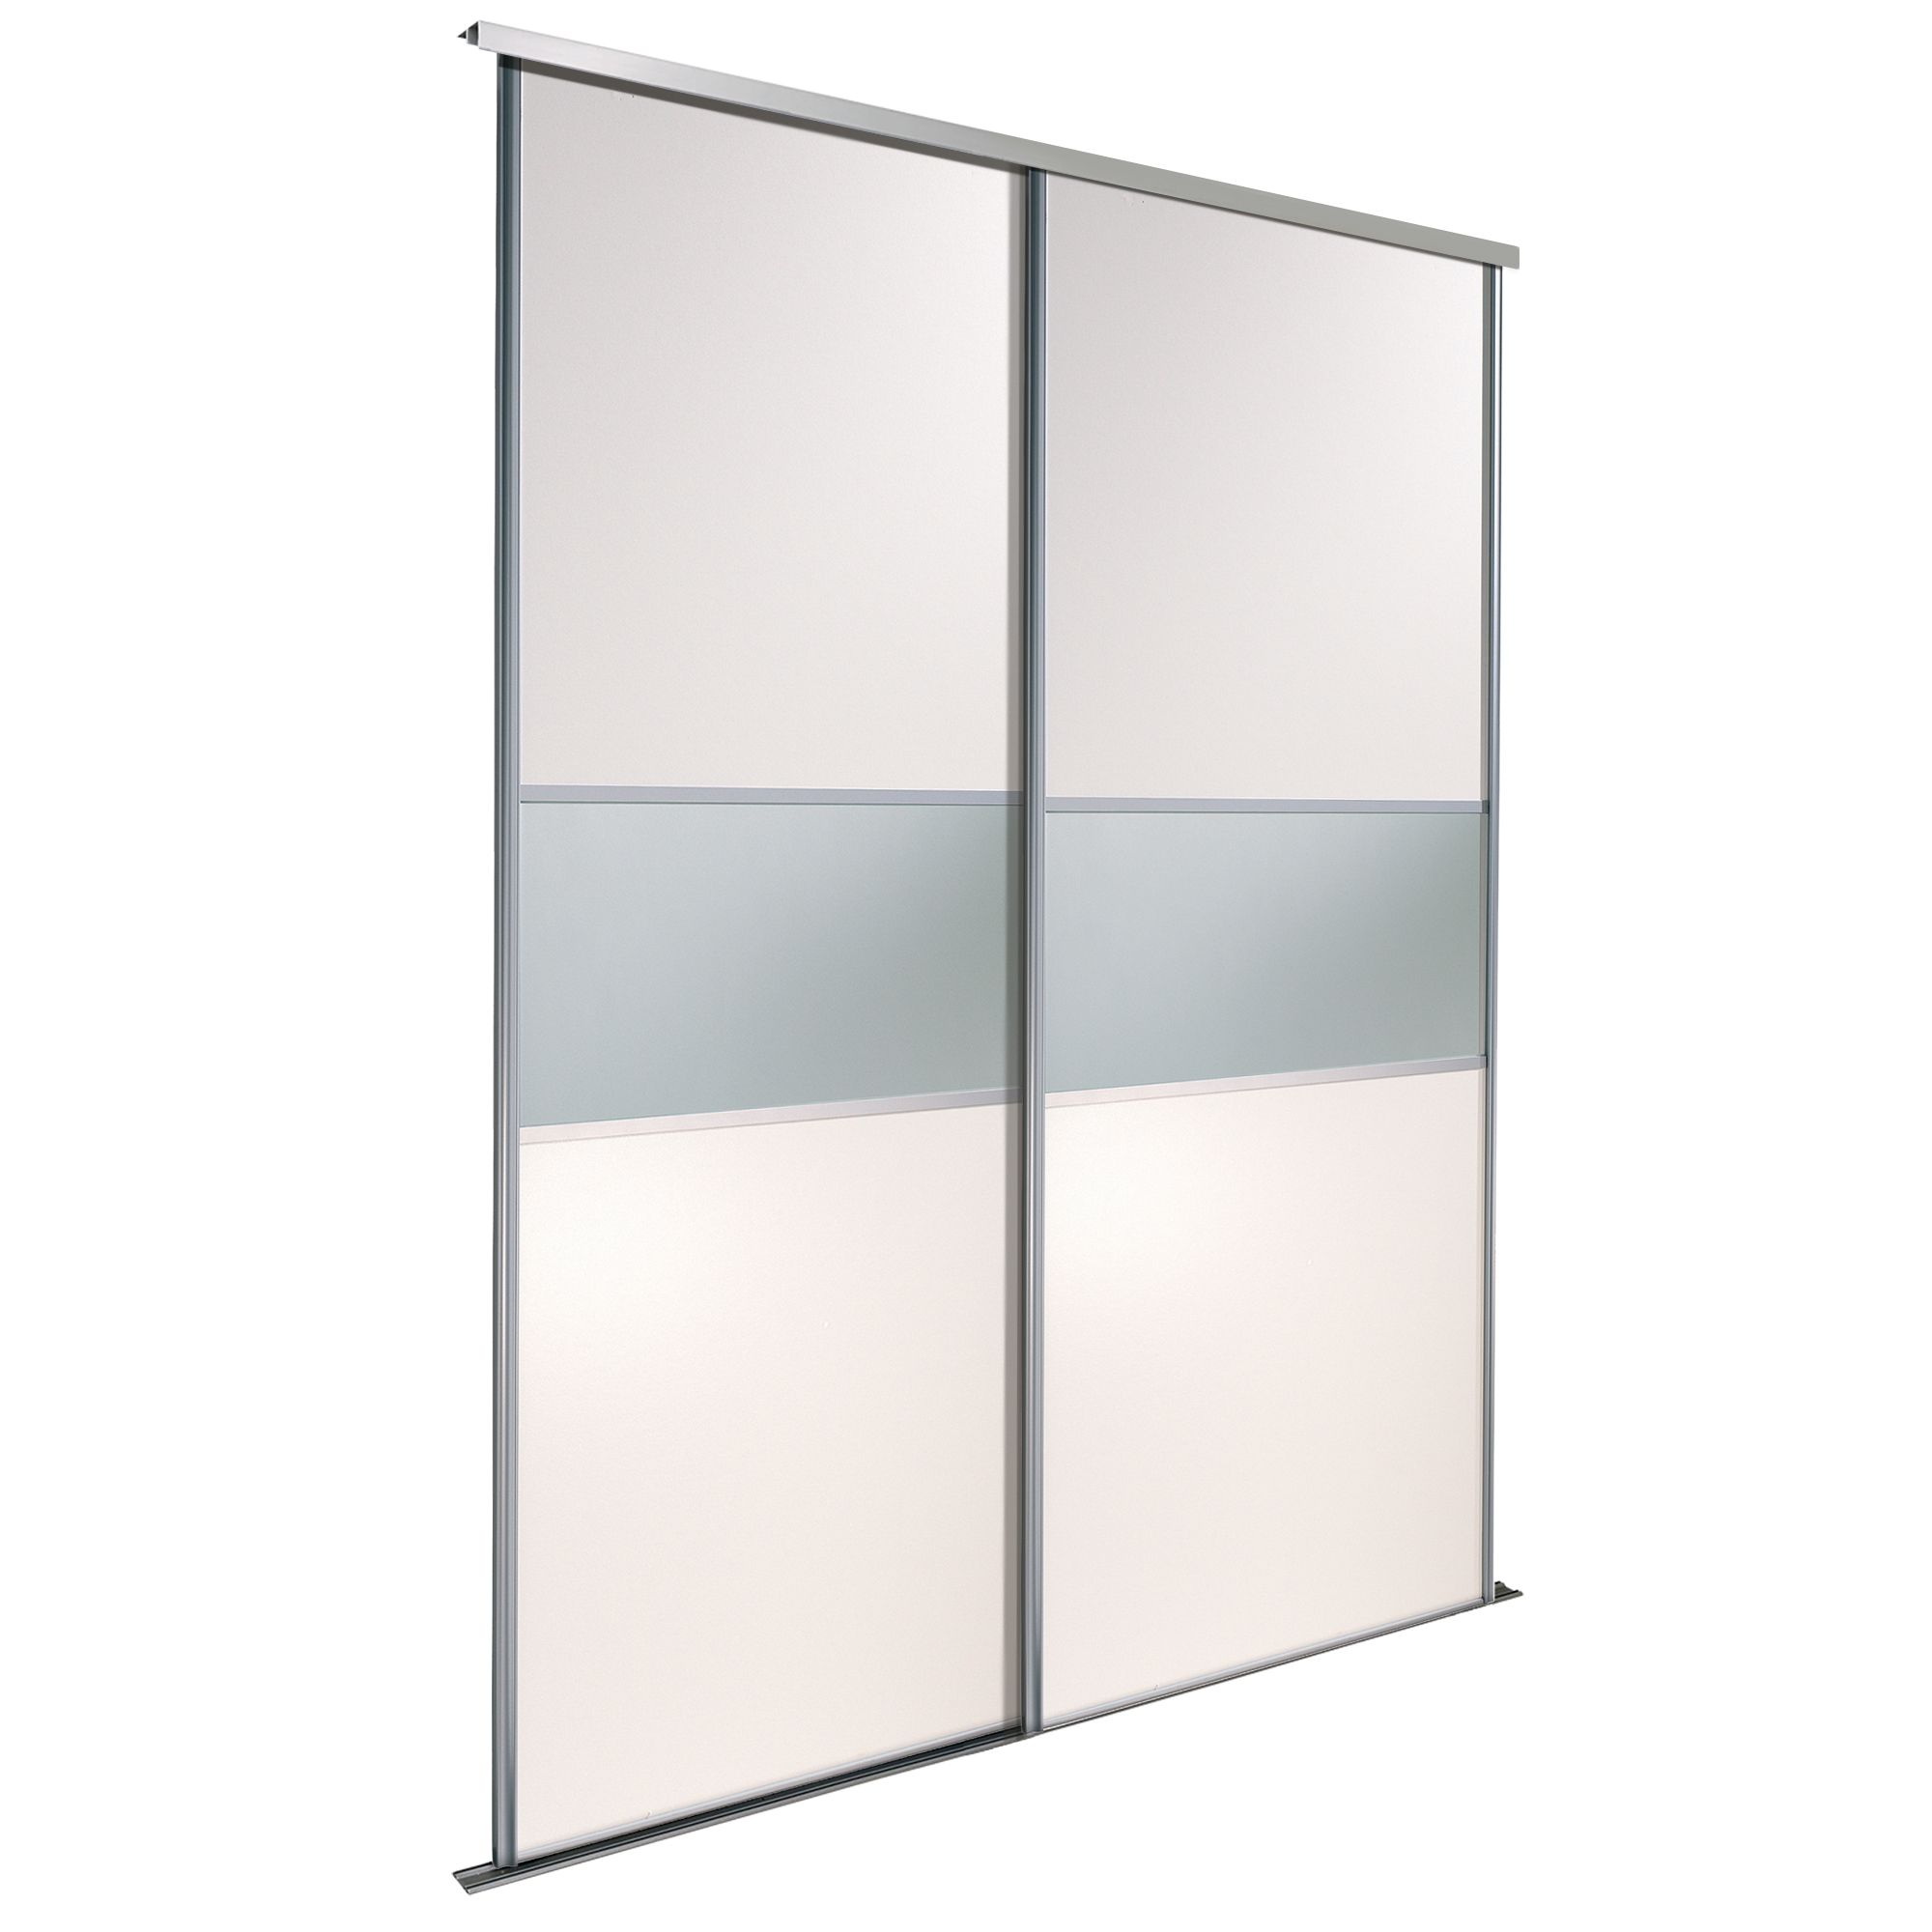 Fineline White Mirror Sliding Wardrobe Door Kit H 2220 Mm W 762mm Pack Of 2 Departments Diy At B Q